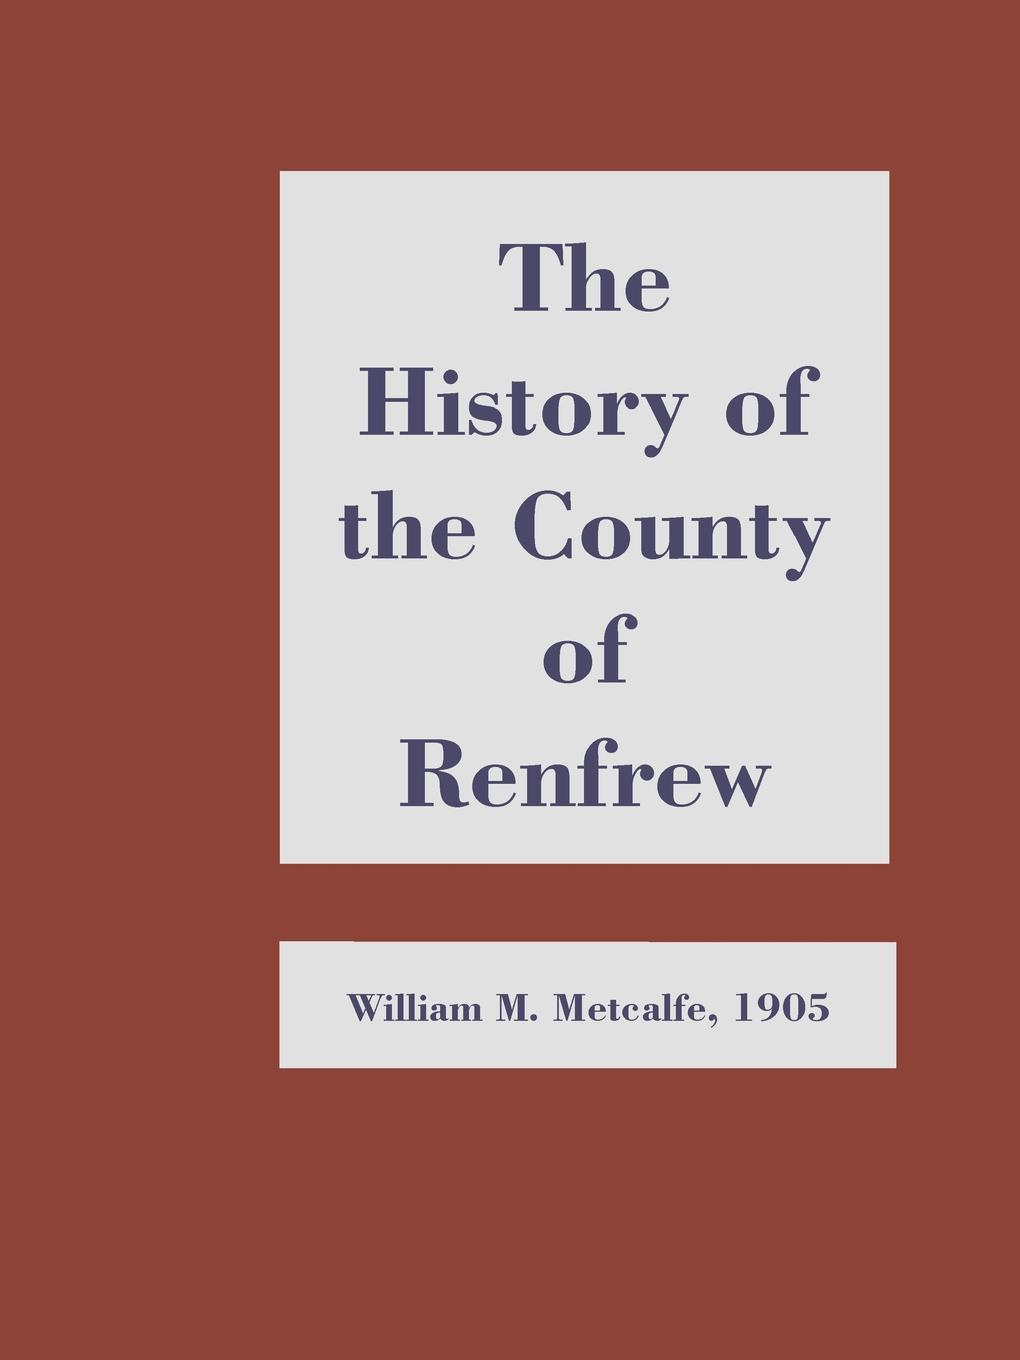 William M. Metcalfe History of the County of Renfrew from the Earliest Times ʻabd al wāḥid al marrākushi the history of the almohades preceded by a sketch of the history of spain from the times of the conquest till the reign of yusof ibn teshufin and of the history of the almoravides